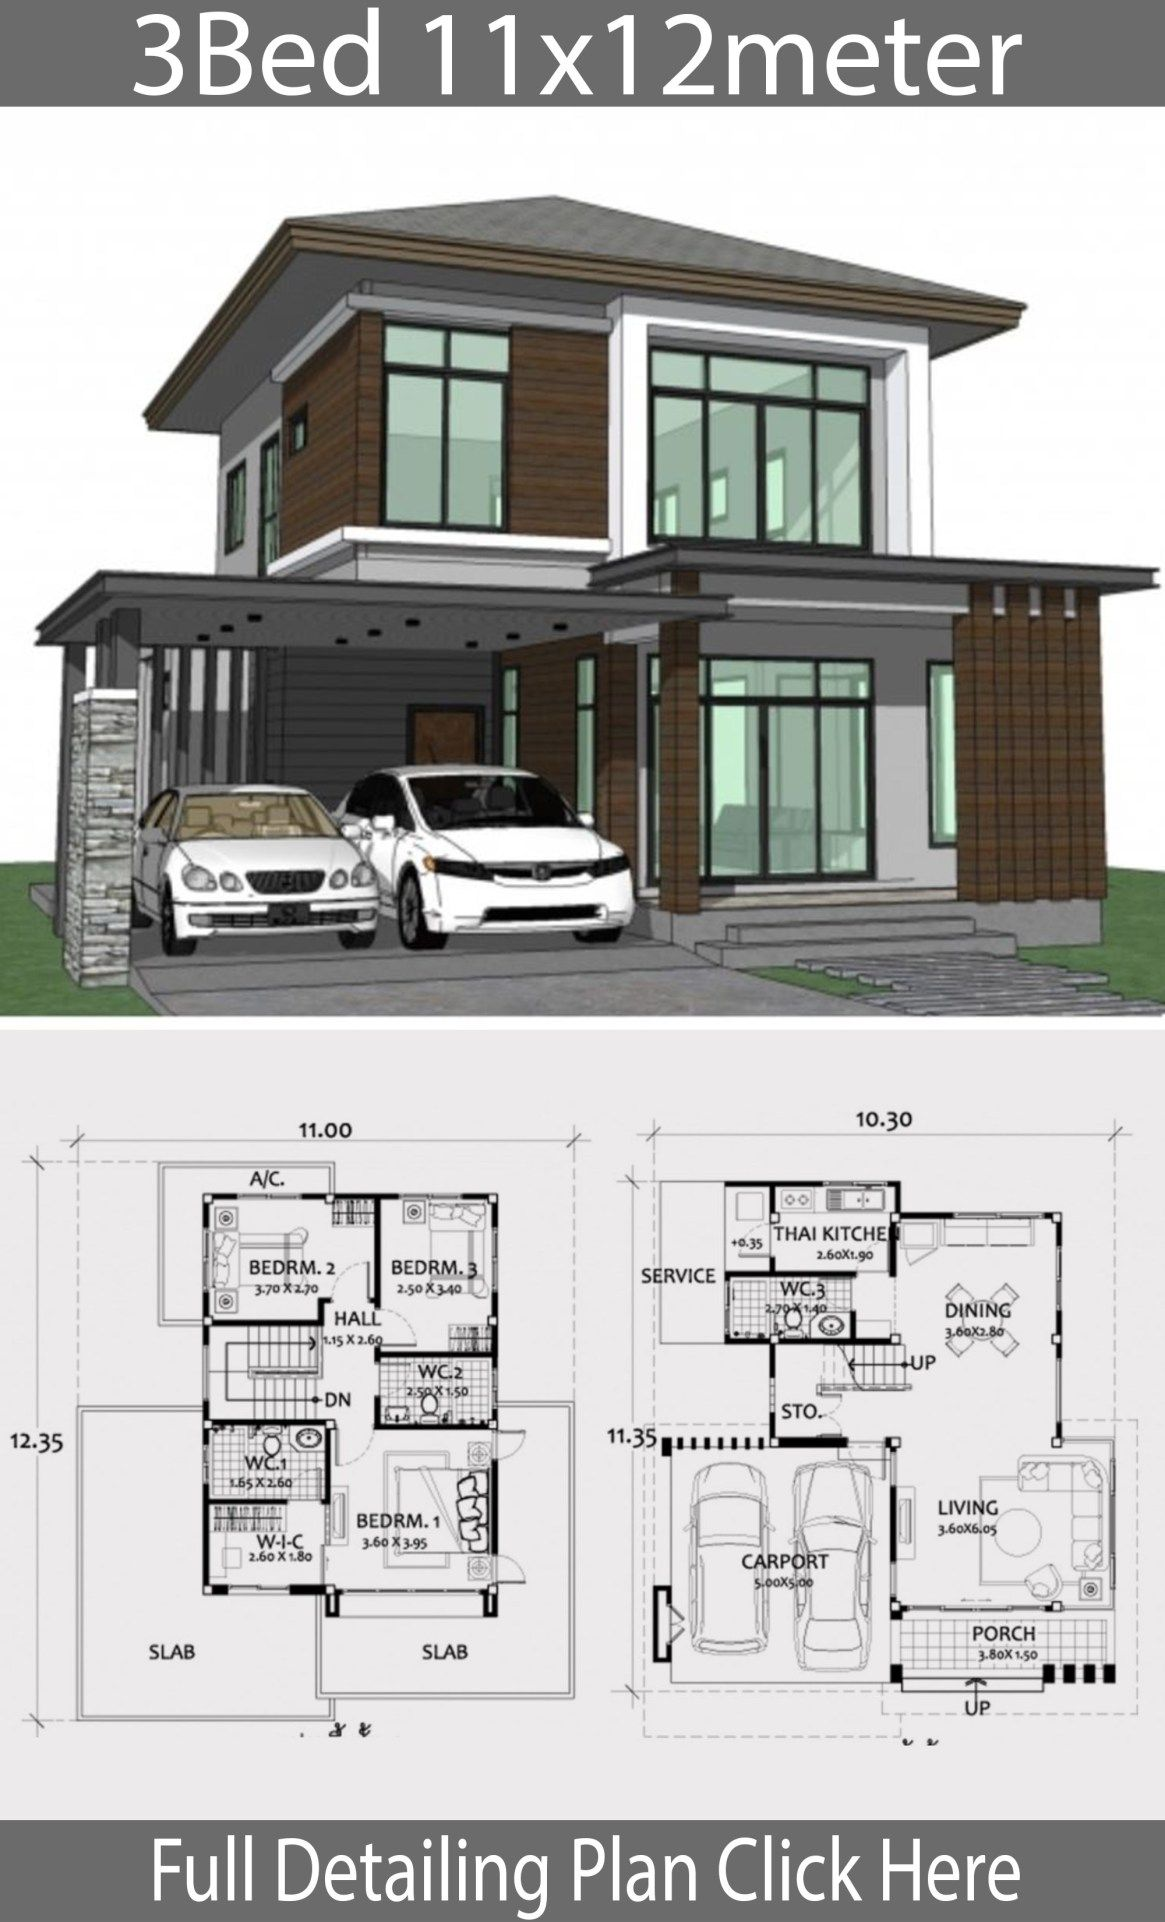 Home Design Plan 11x12m With 3 Bedrooms Home Design With Plansearch Modern House Design Two Story House Design House Designs Exterior